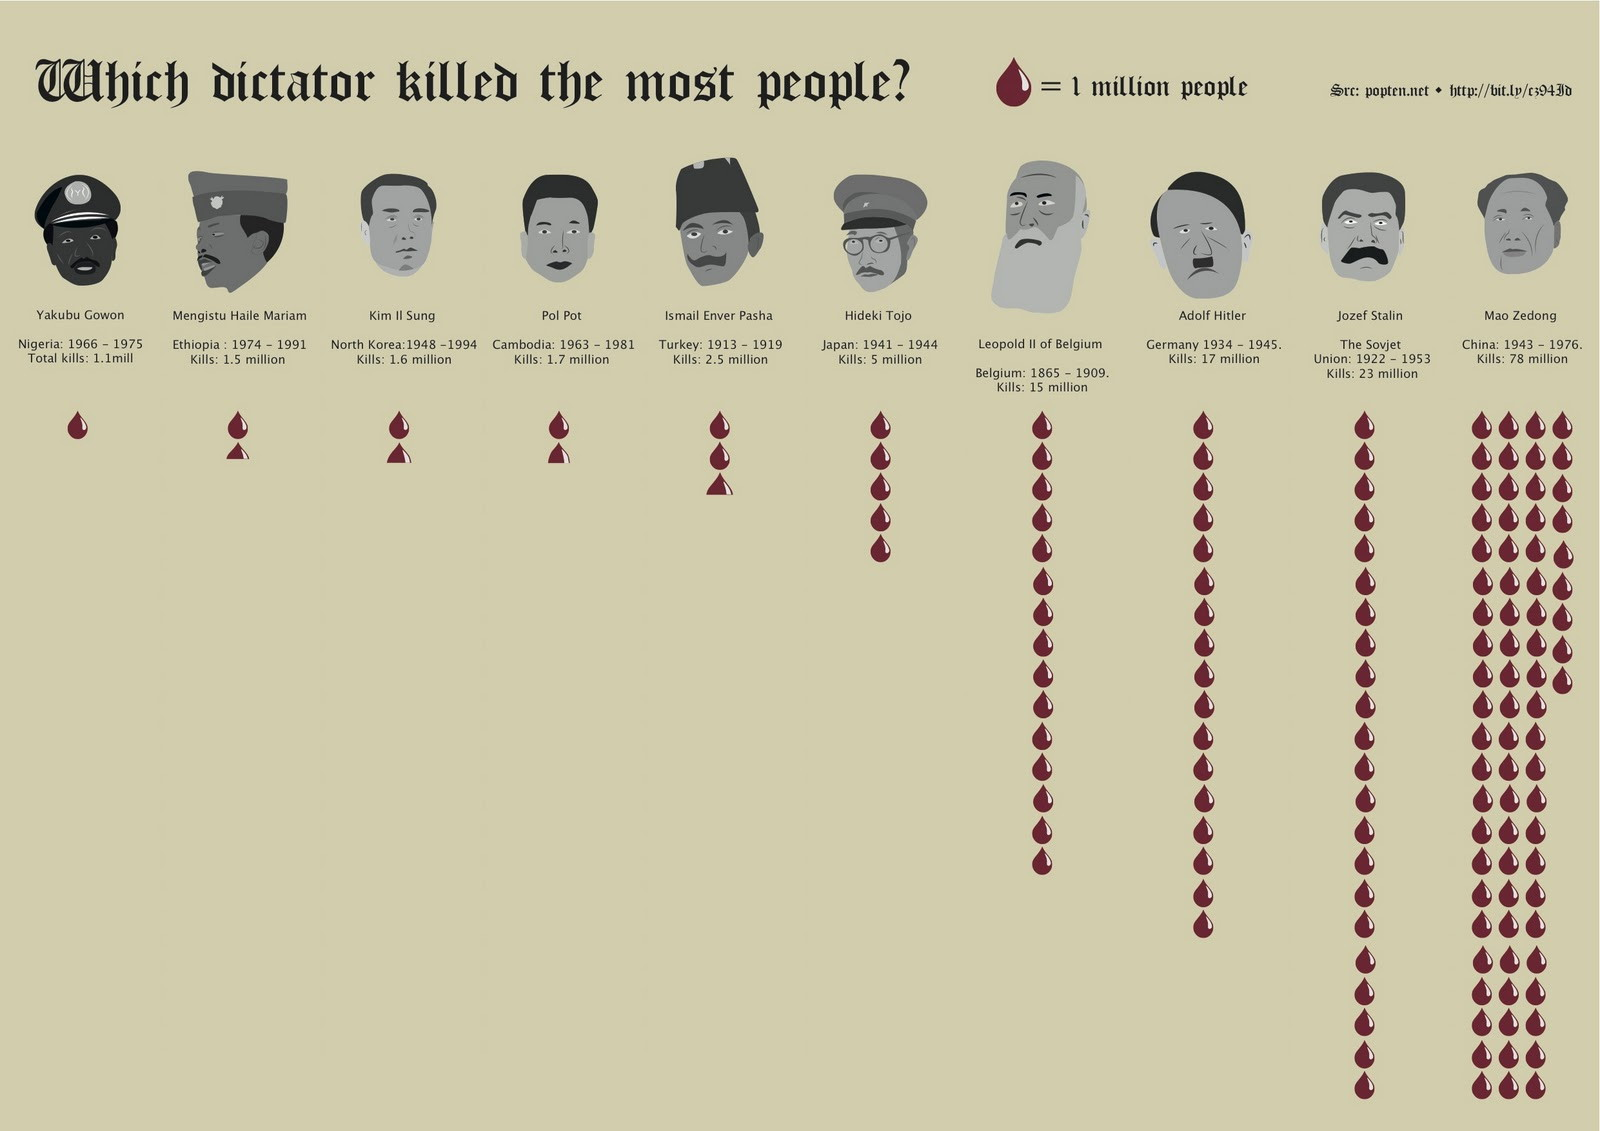 which_dictator_killed_the_most_people